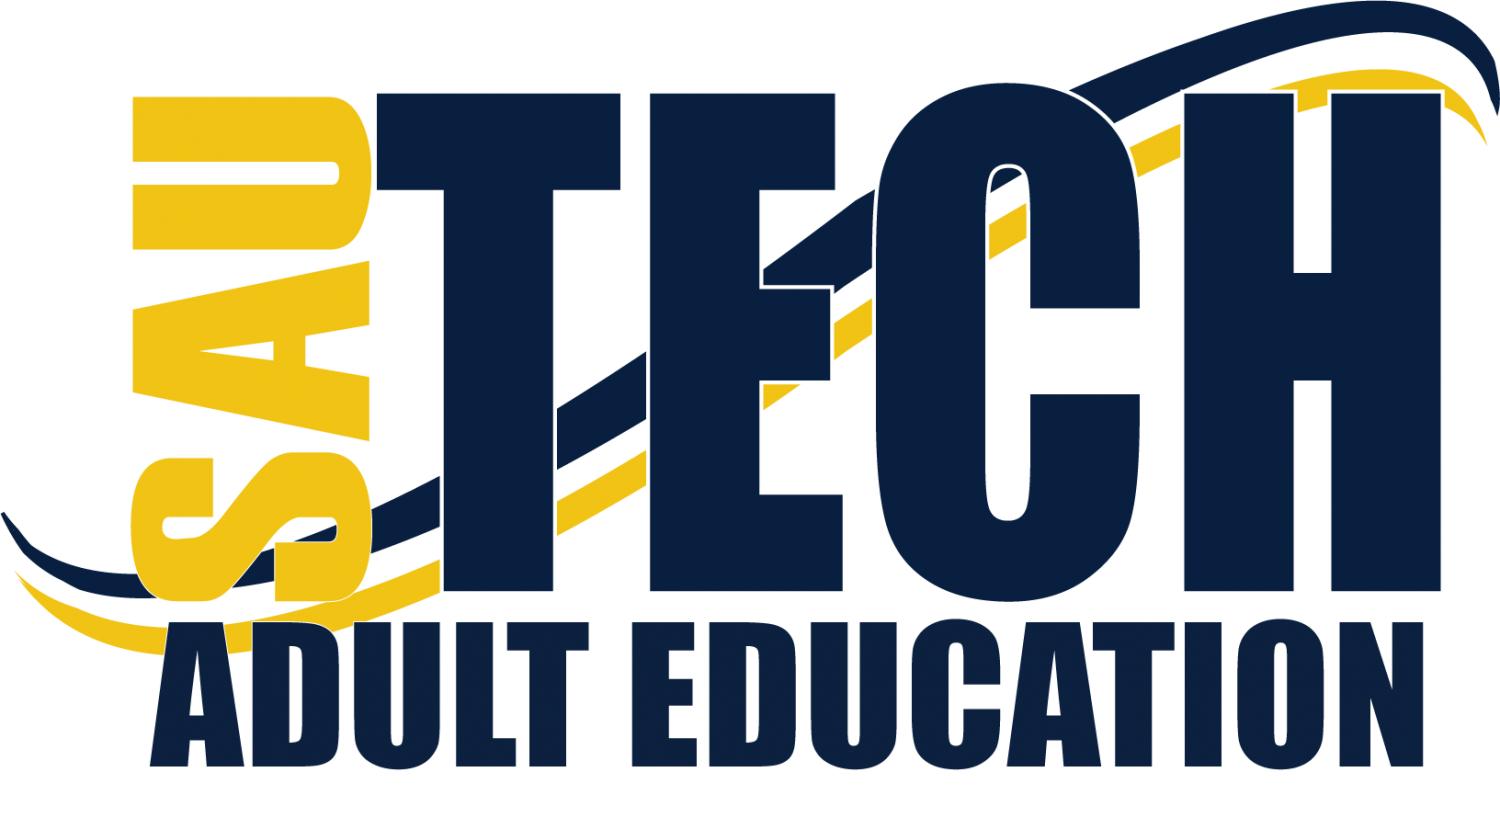 logo for adult education